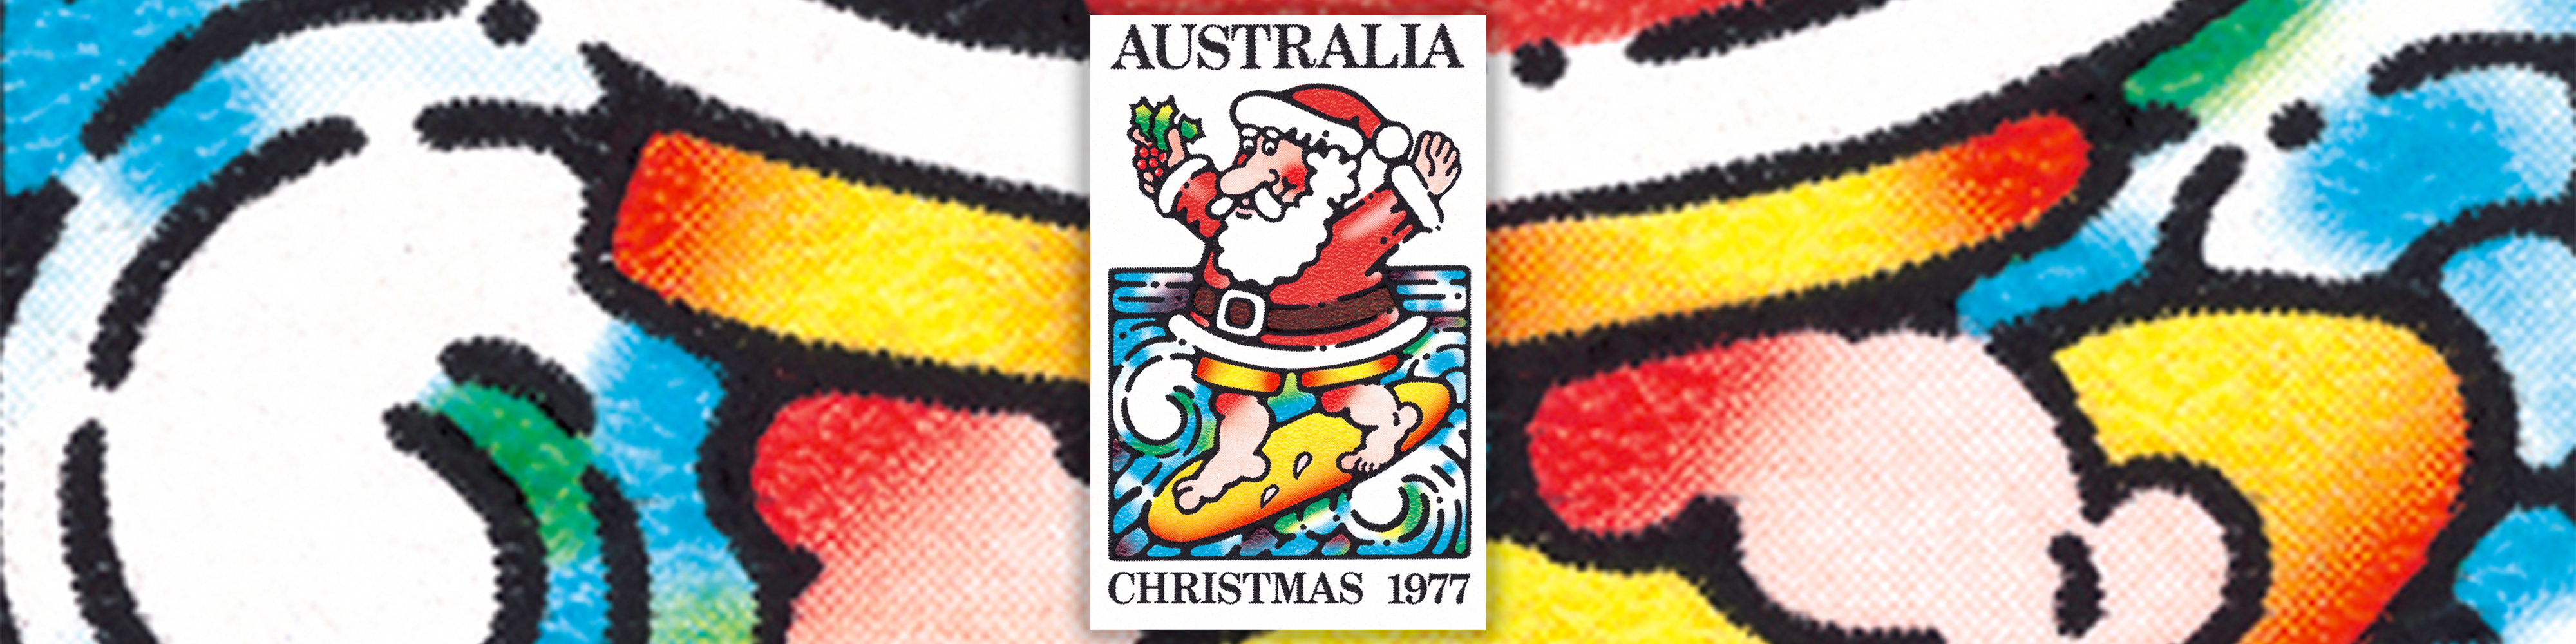 Surfing santa christmas stamp 1977 australia post spiritdancerdesigns Image collections